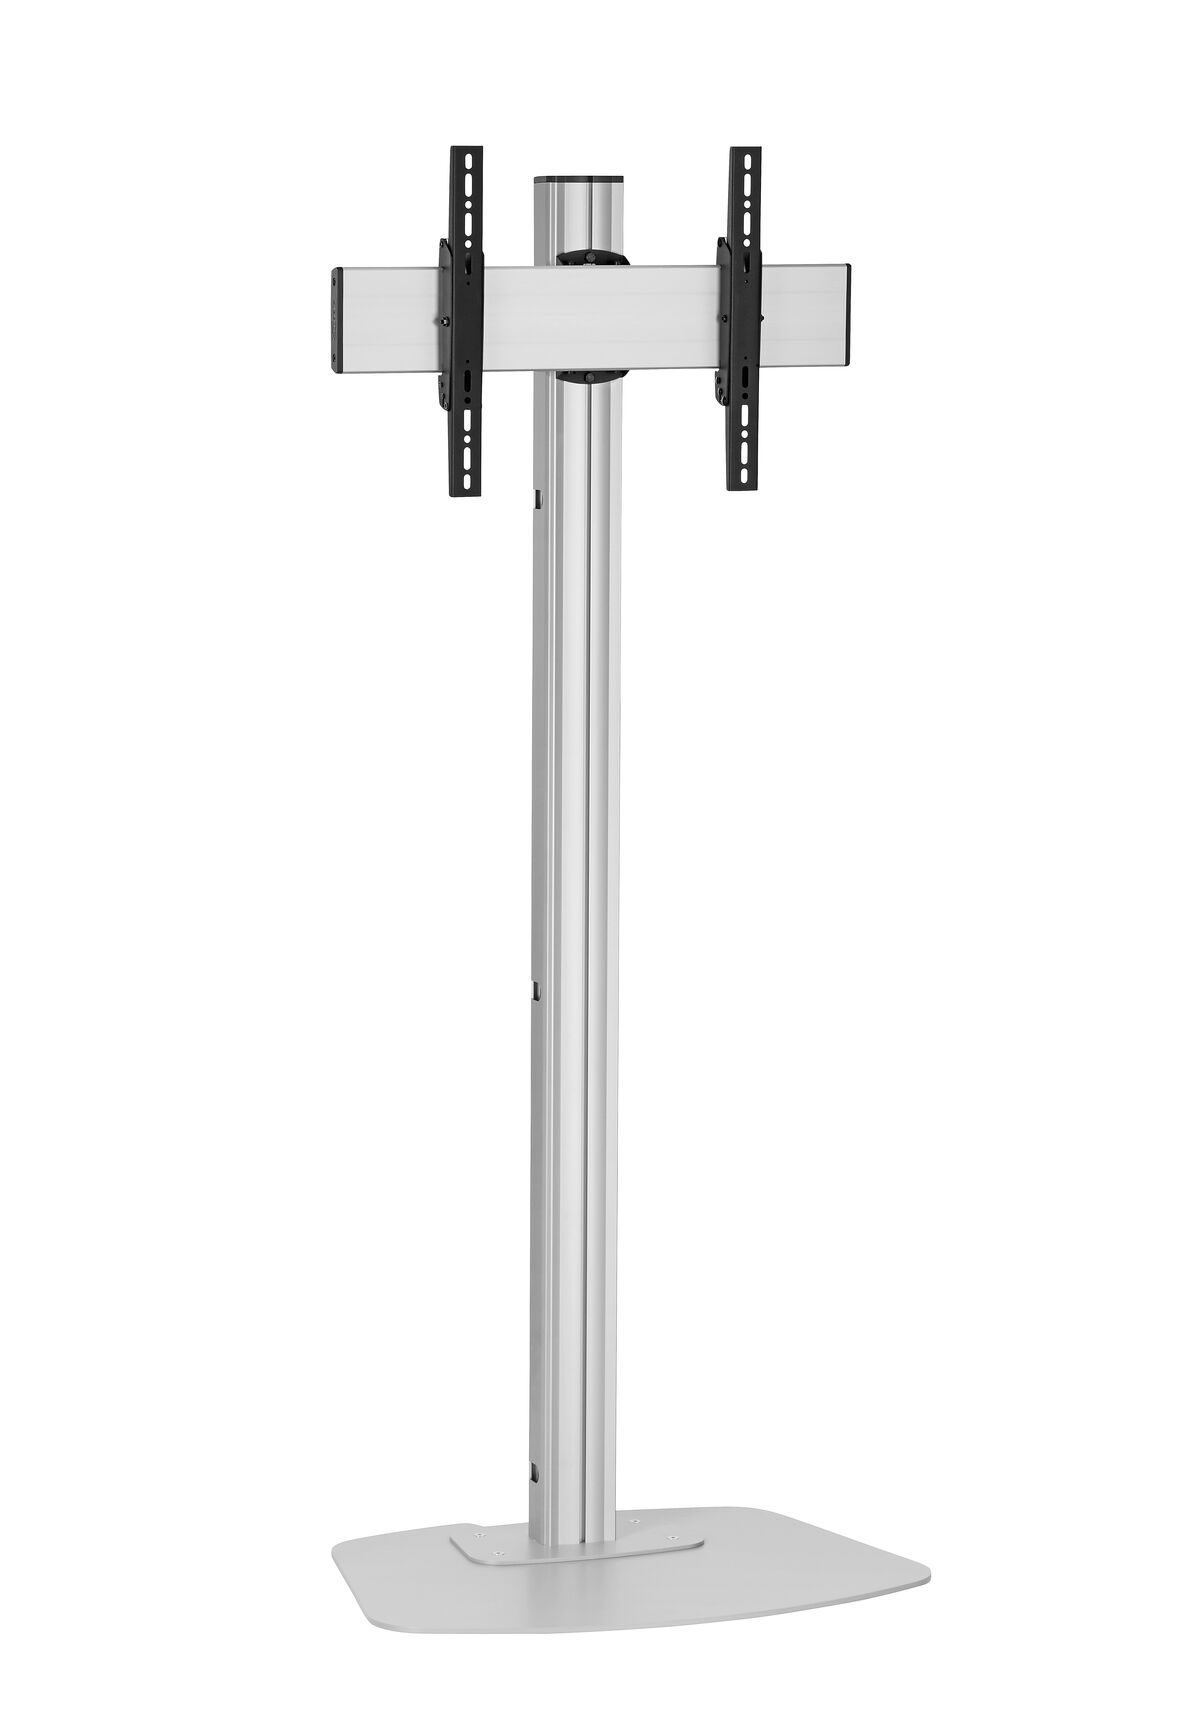 Vogel's F2044S Floor stand - Product